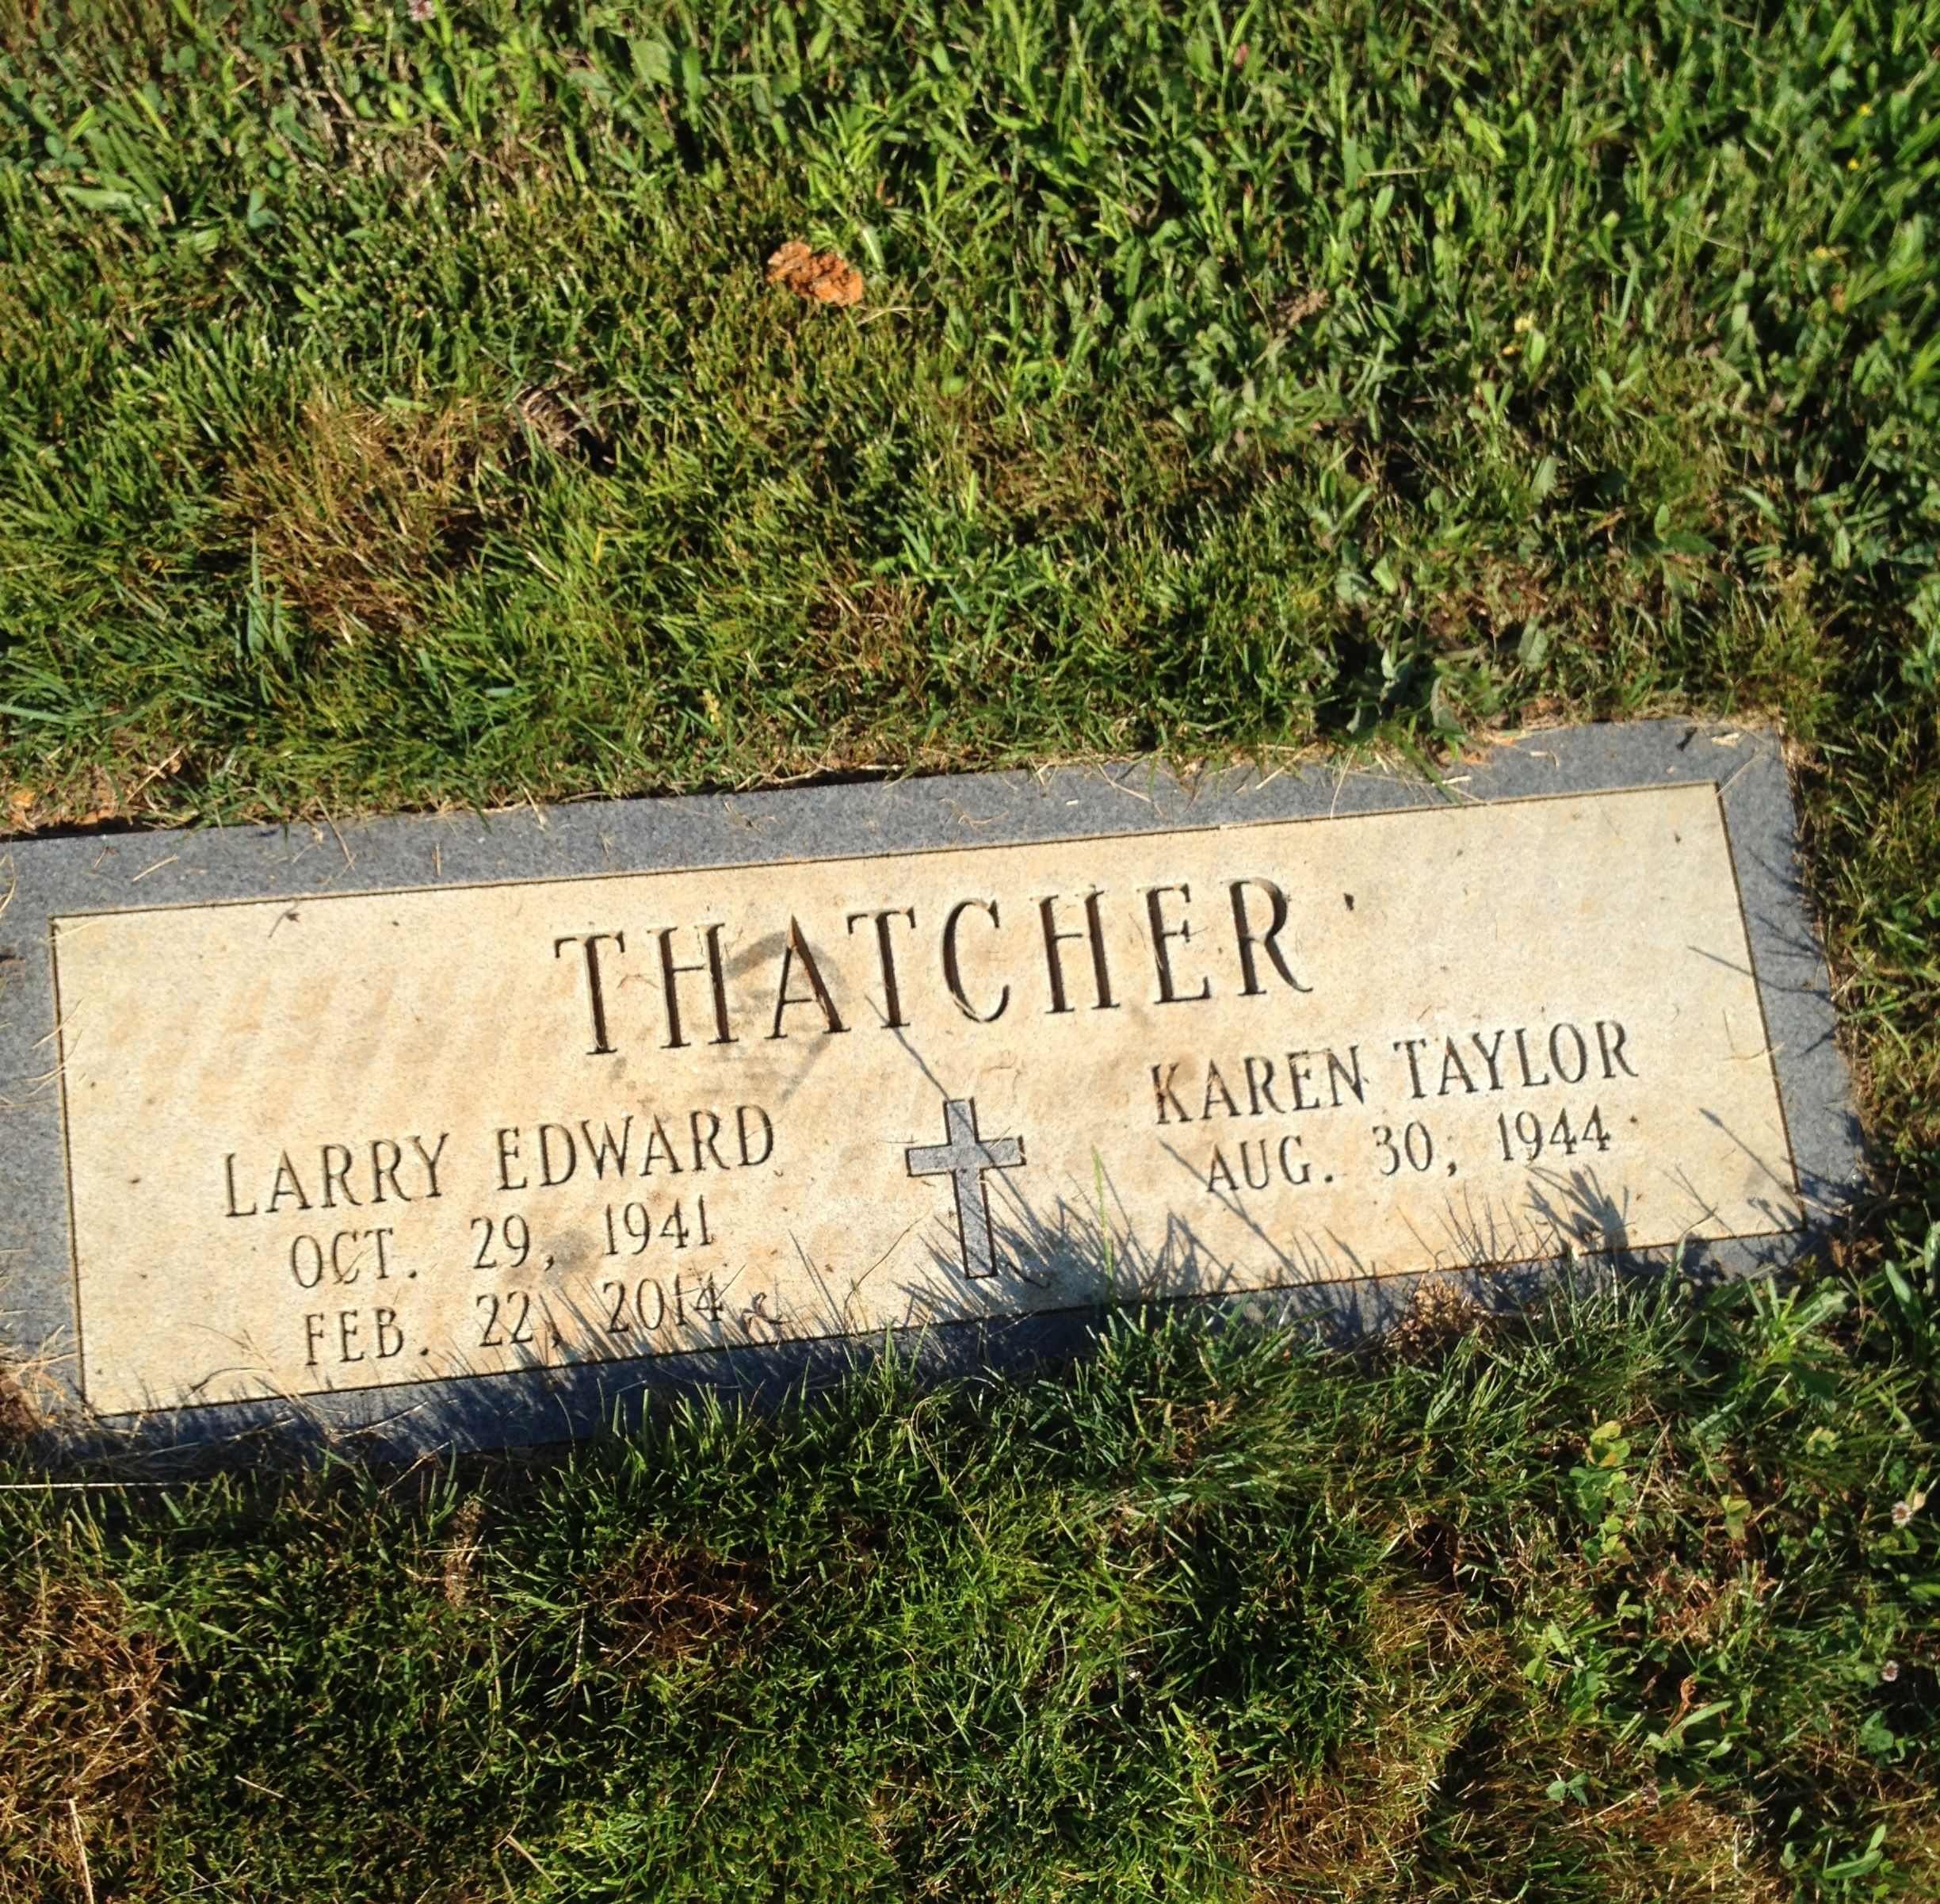 Larry Edward Thatcher